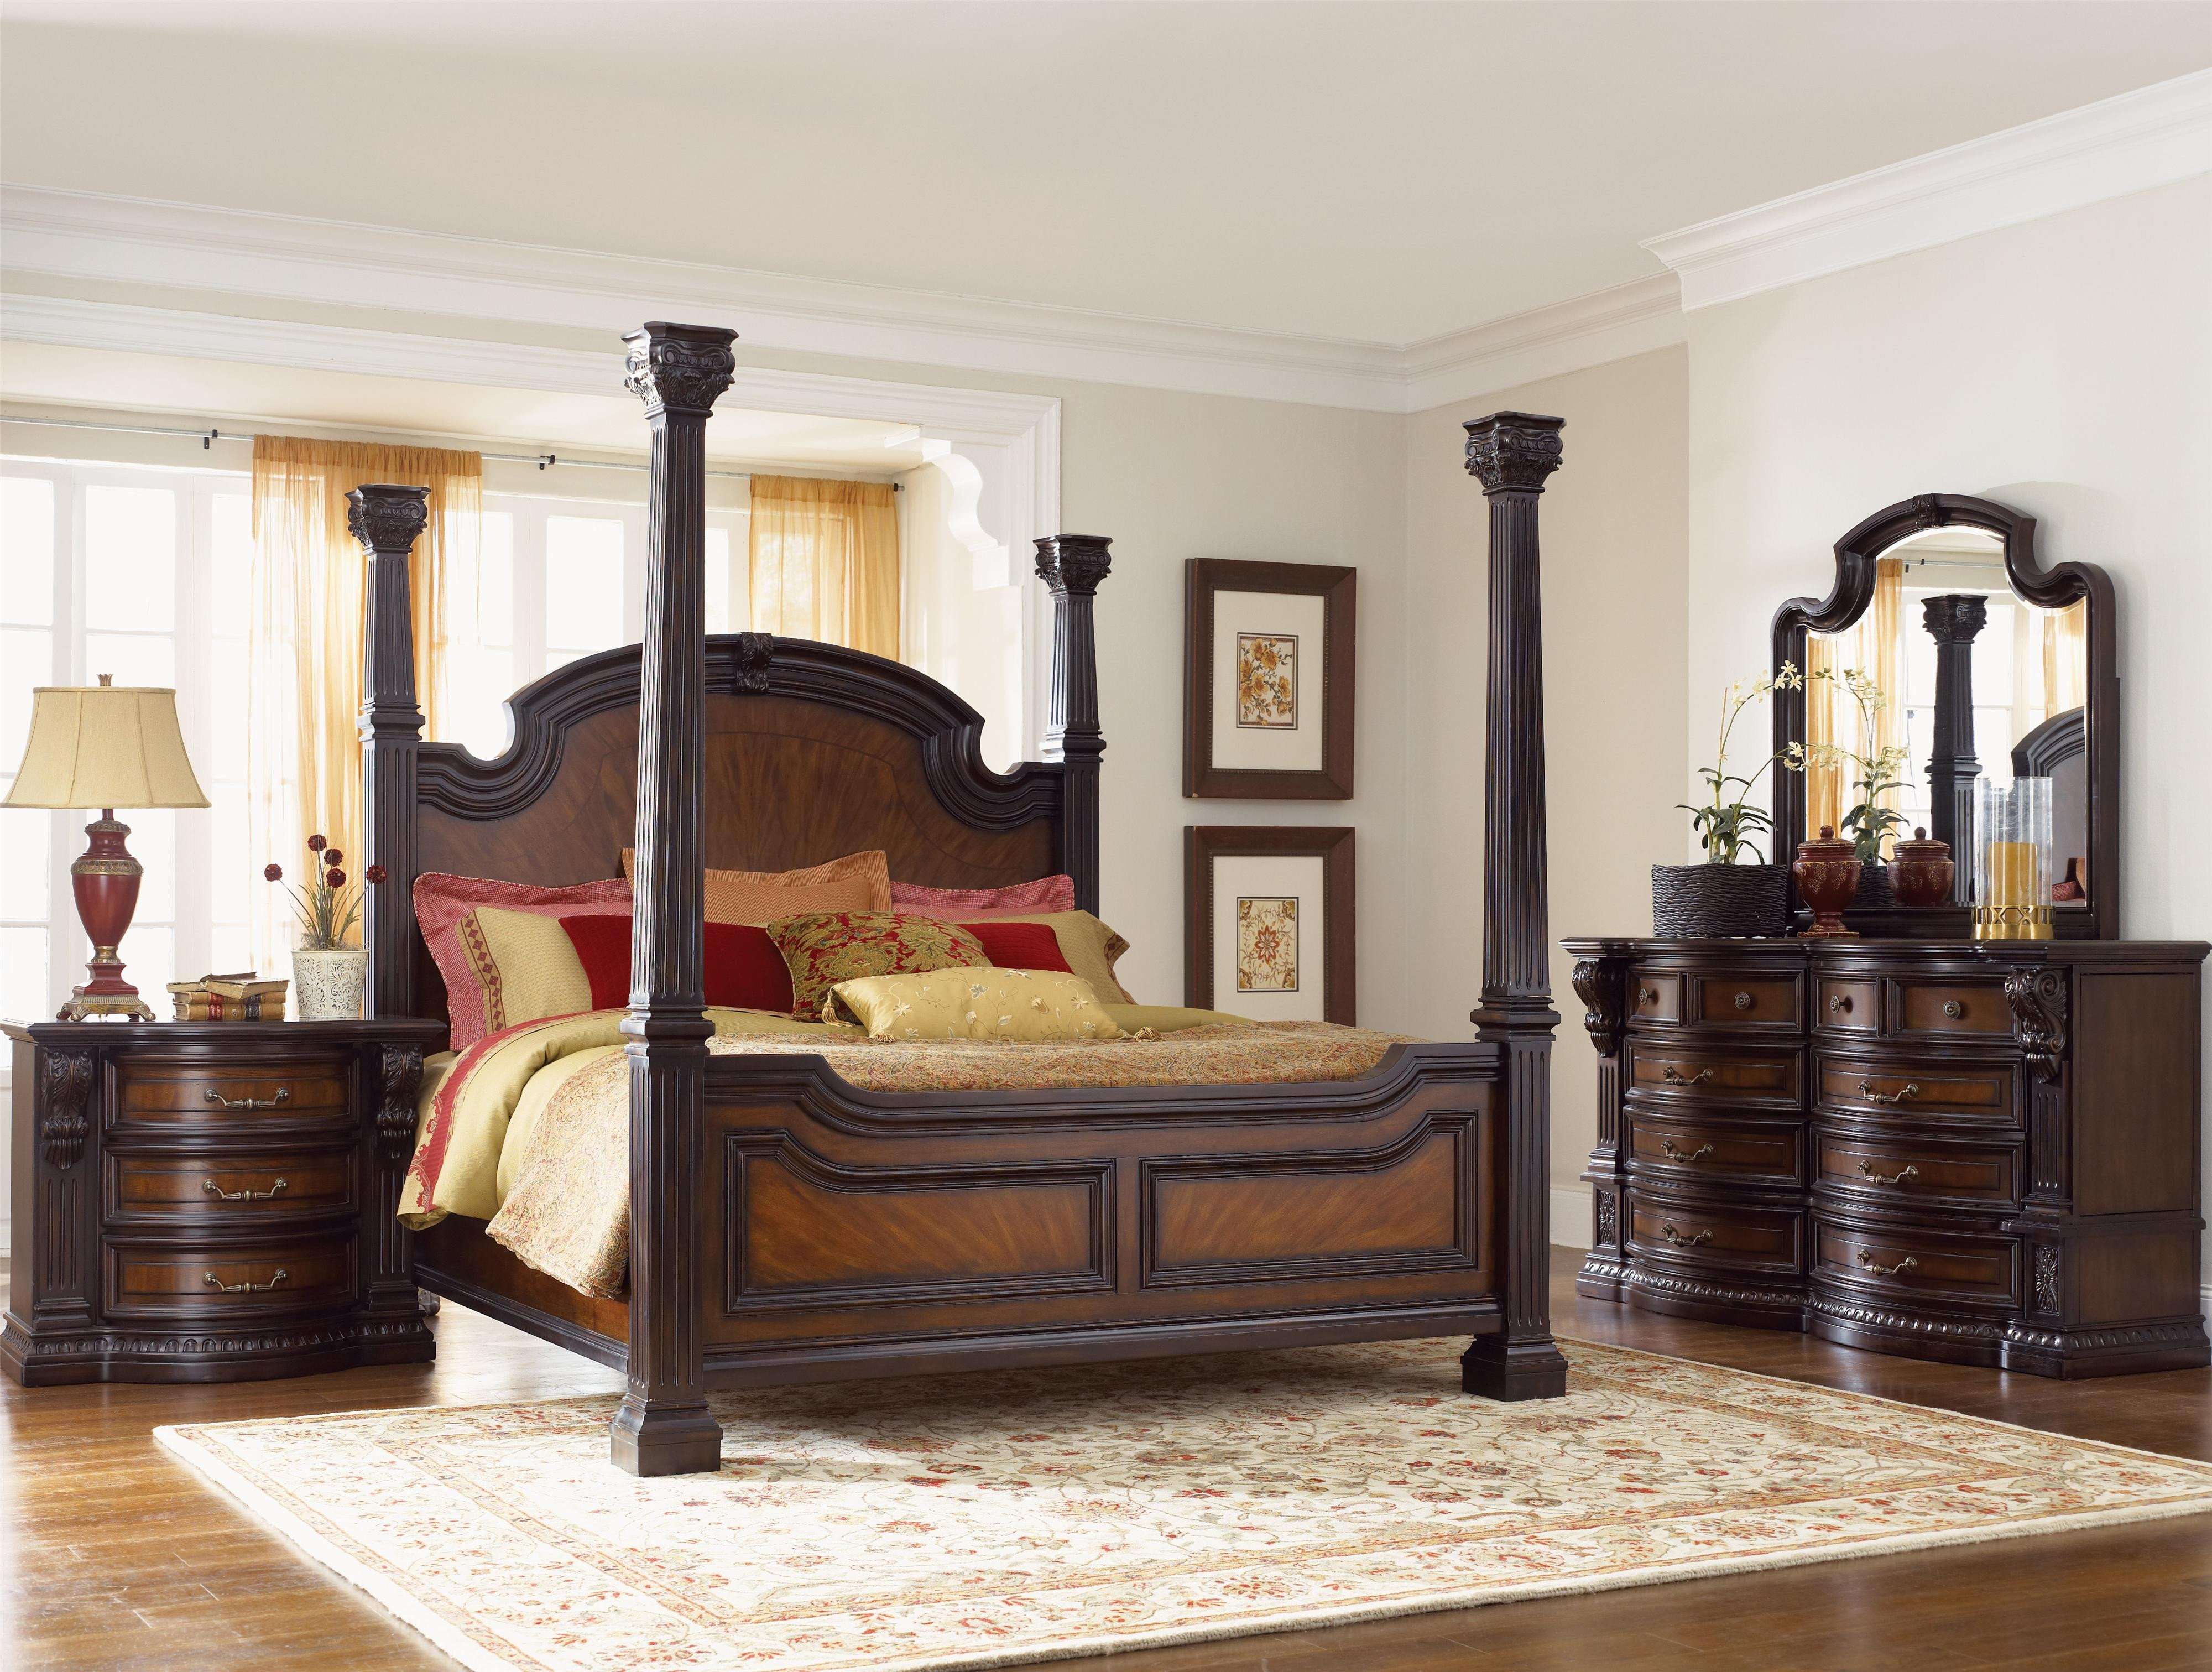 King Size Bedroom Set with Mattress New Grand Estates 02 by Fairmont Designs Royal Furniture